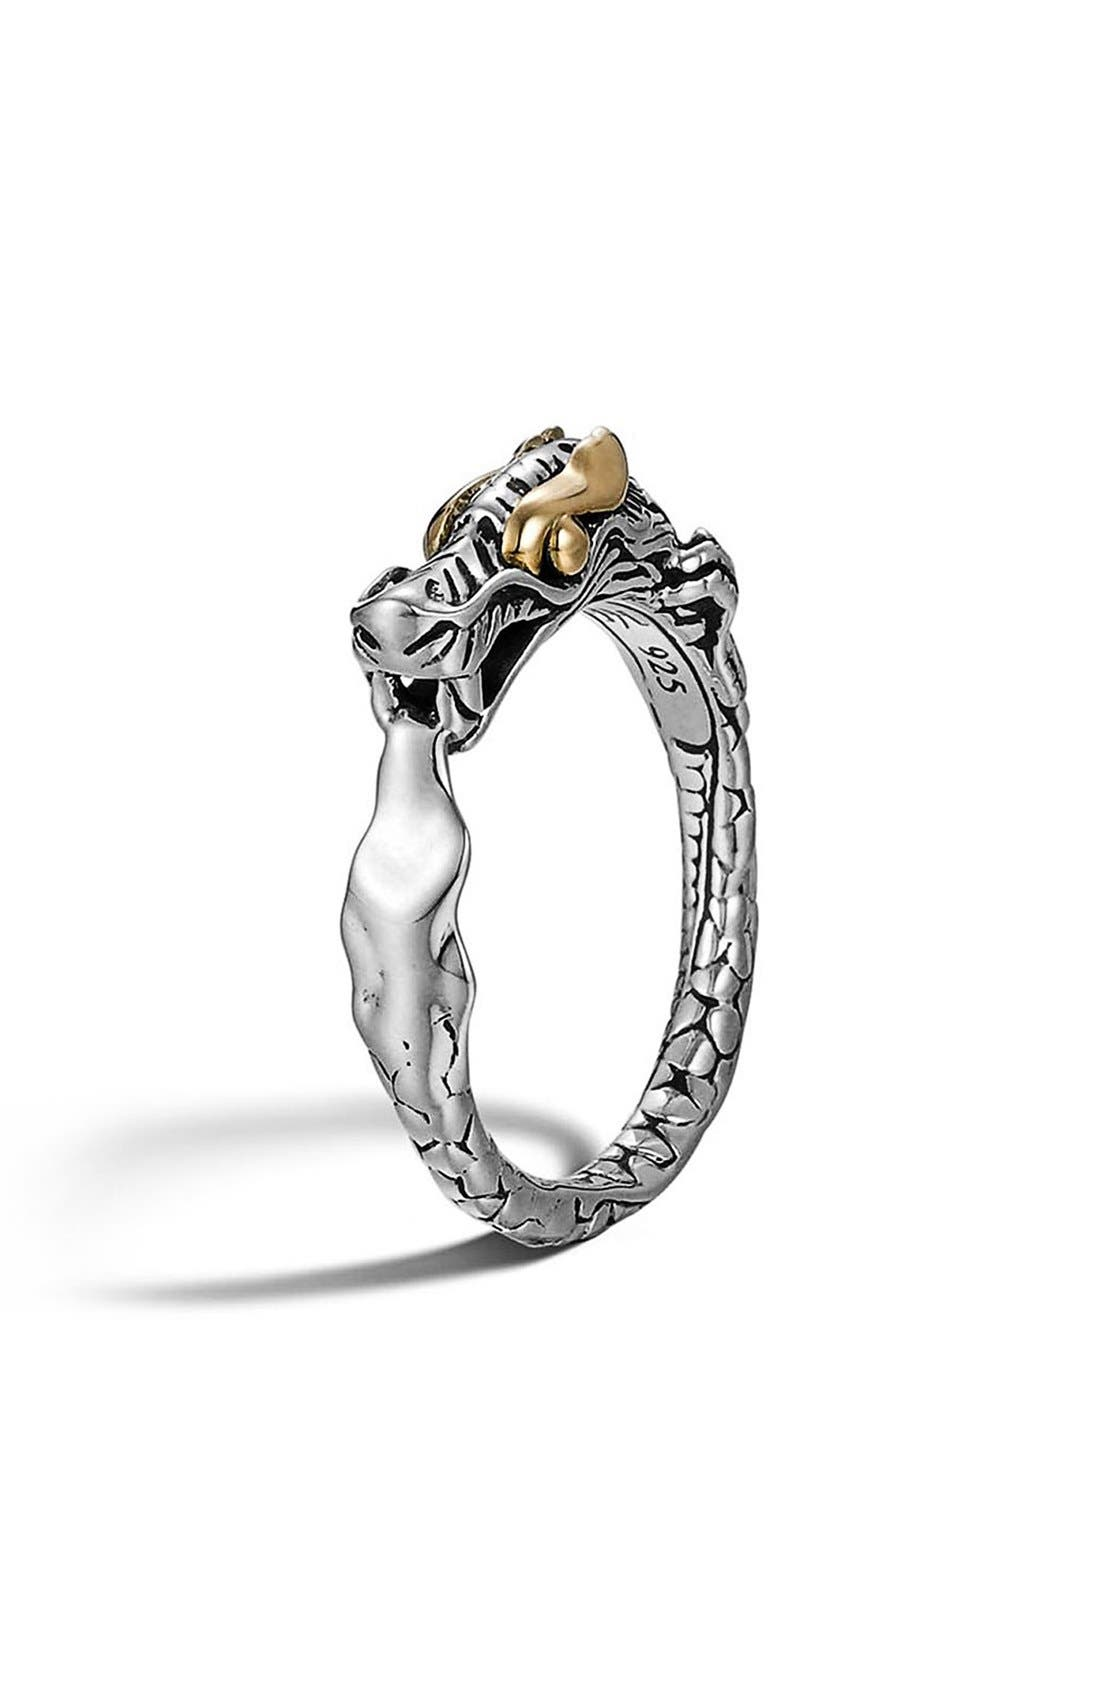 Main Image - John Hardy 'Legends' Slim Dragon Ring